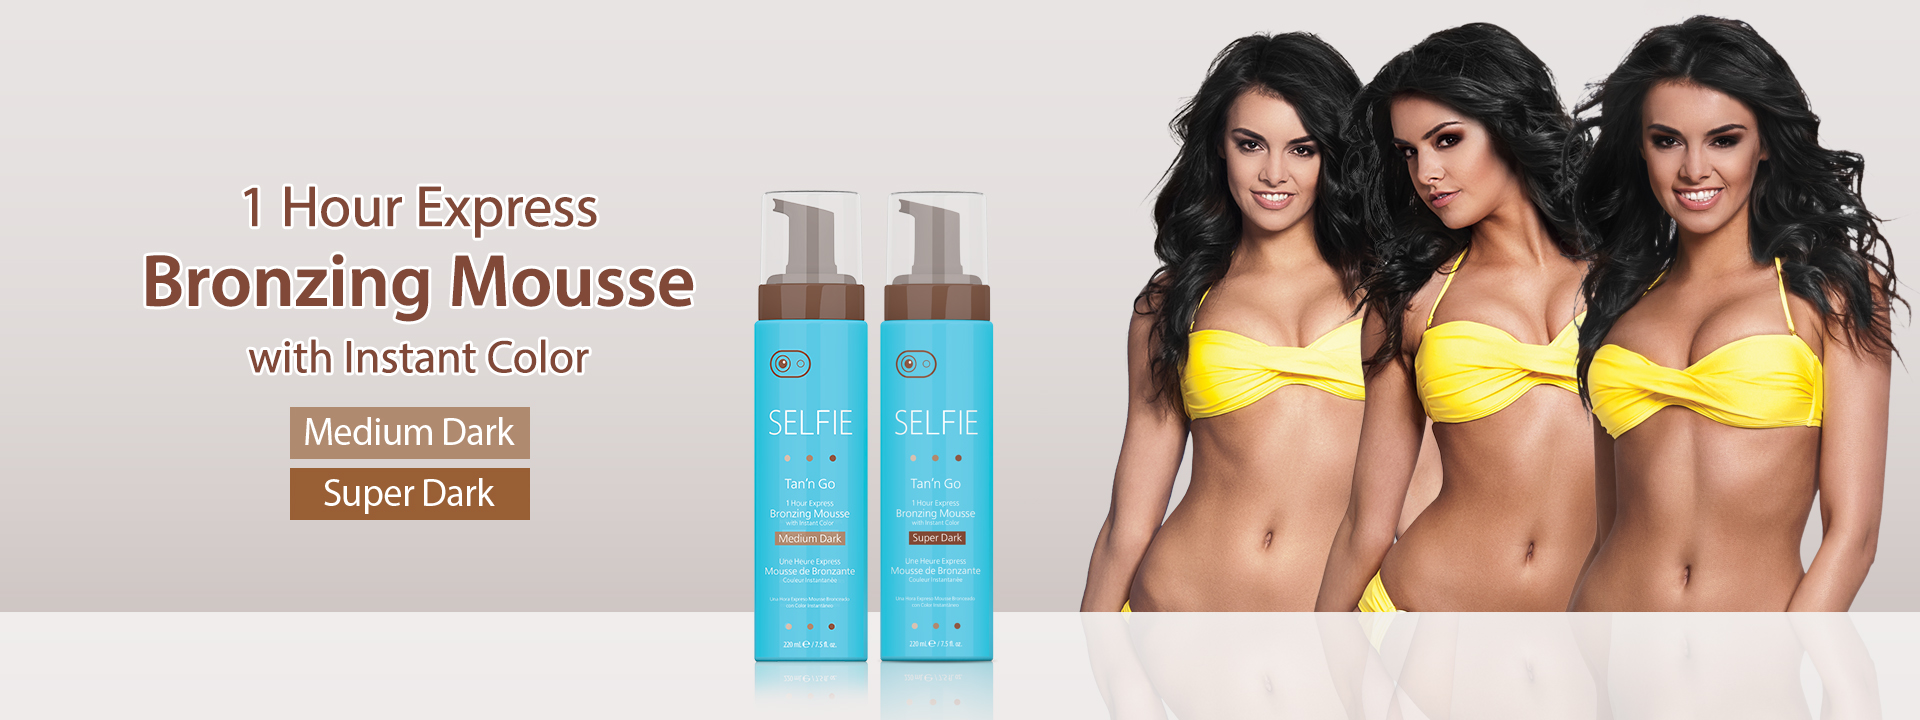 1 Hour Express Bronzing Mousse with Instant Color